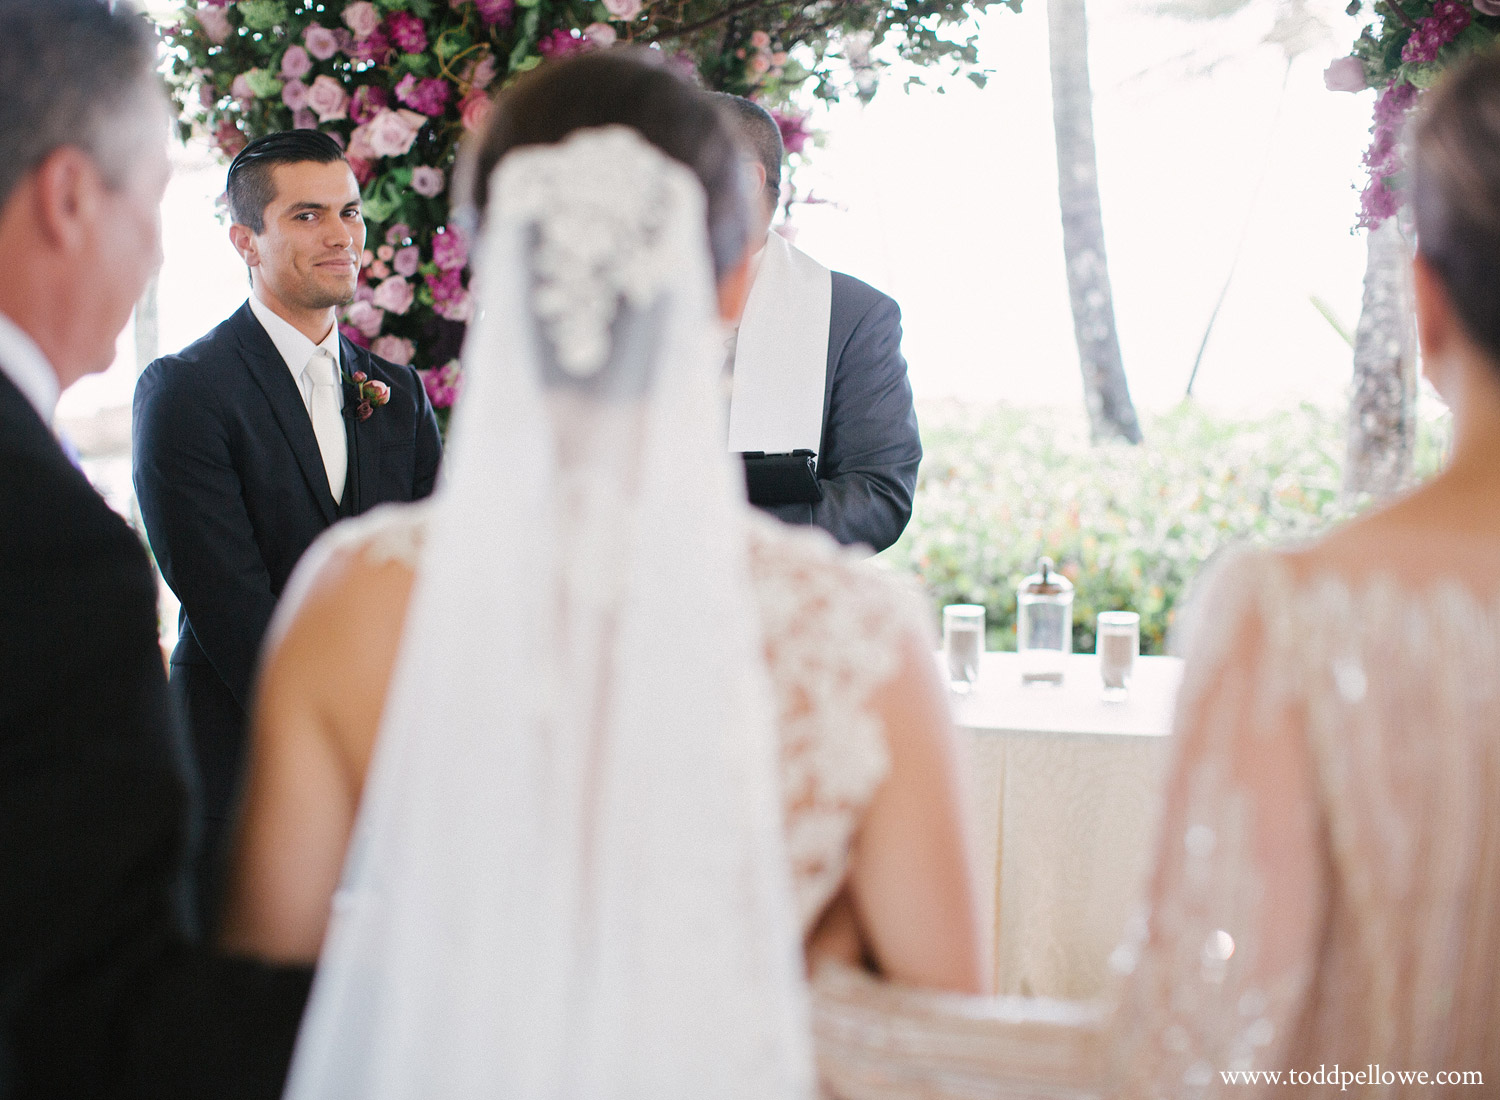 031-ritz-carlton-dorado-beach-wedding-323.jpg